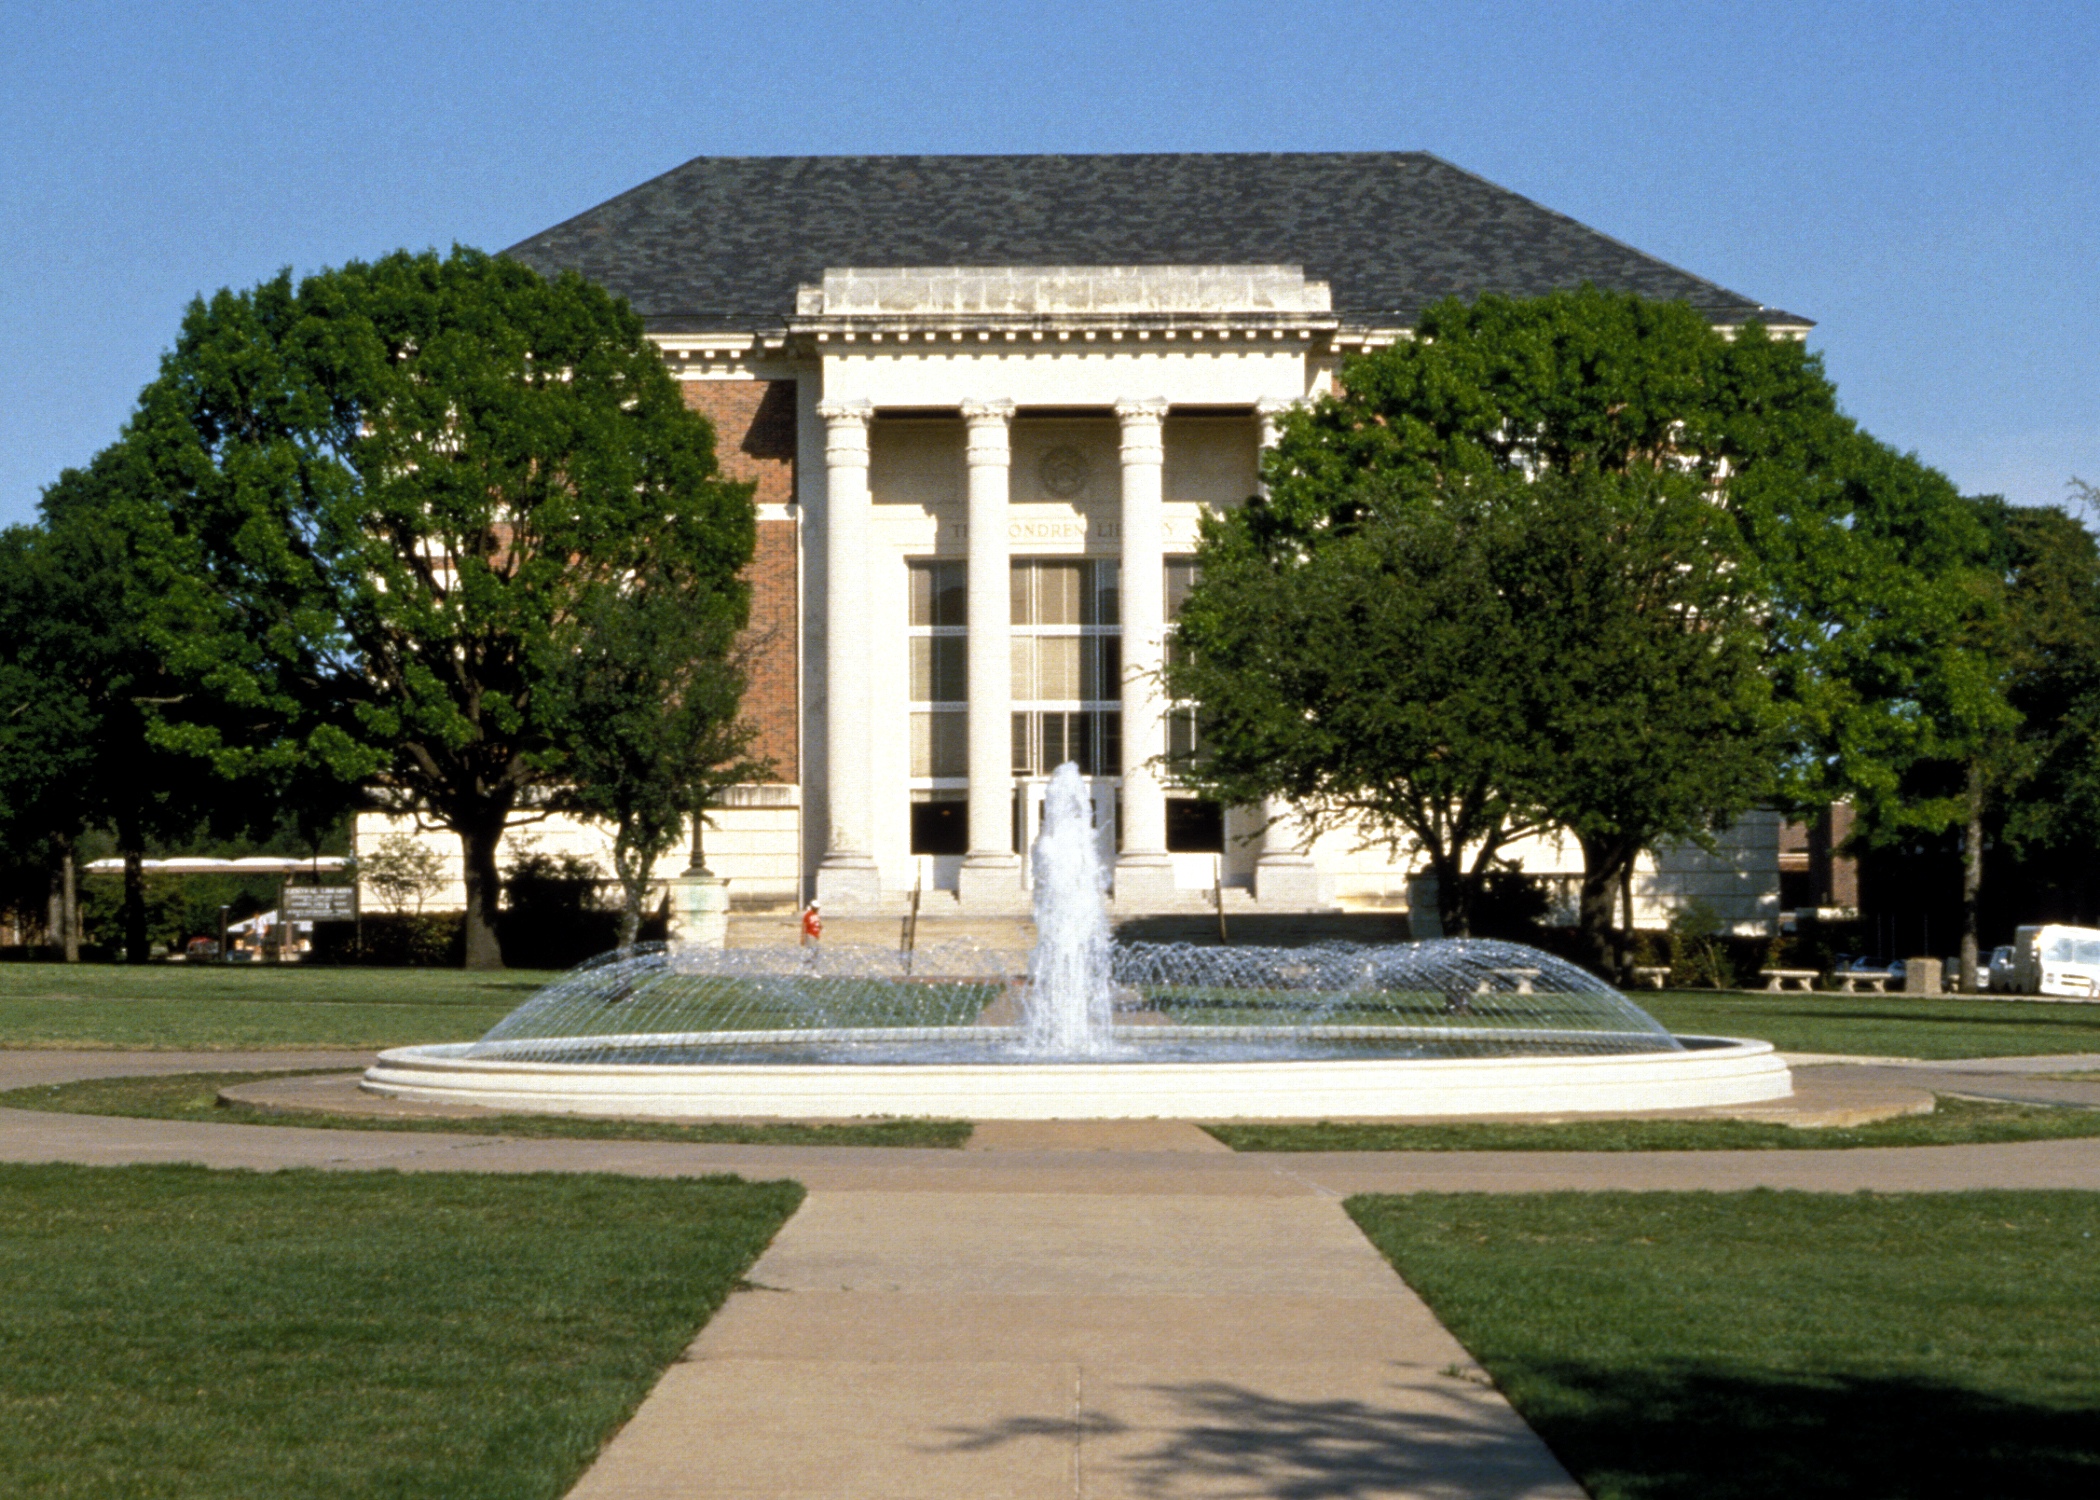 DeGolyer Library at SMU